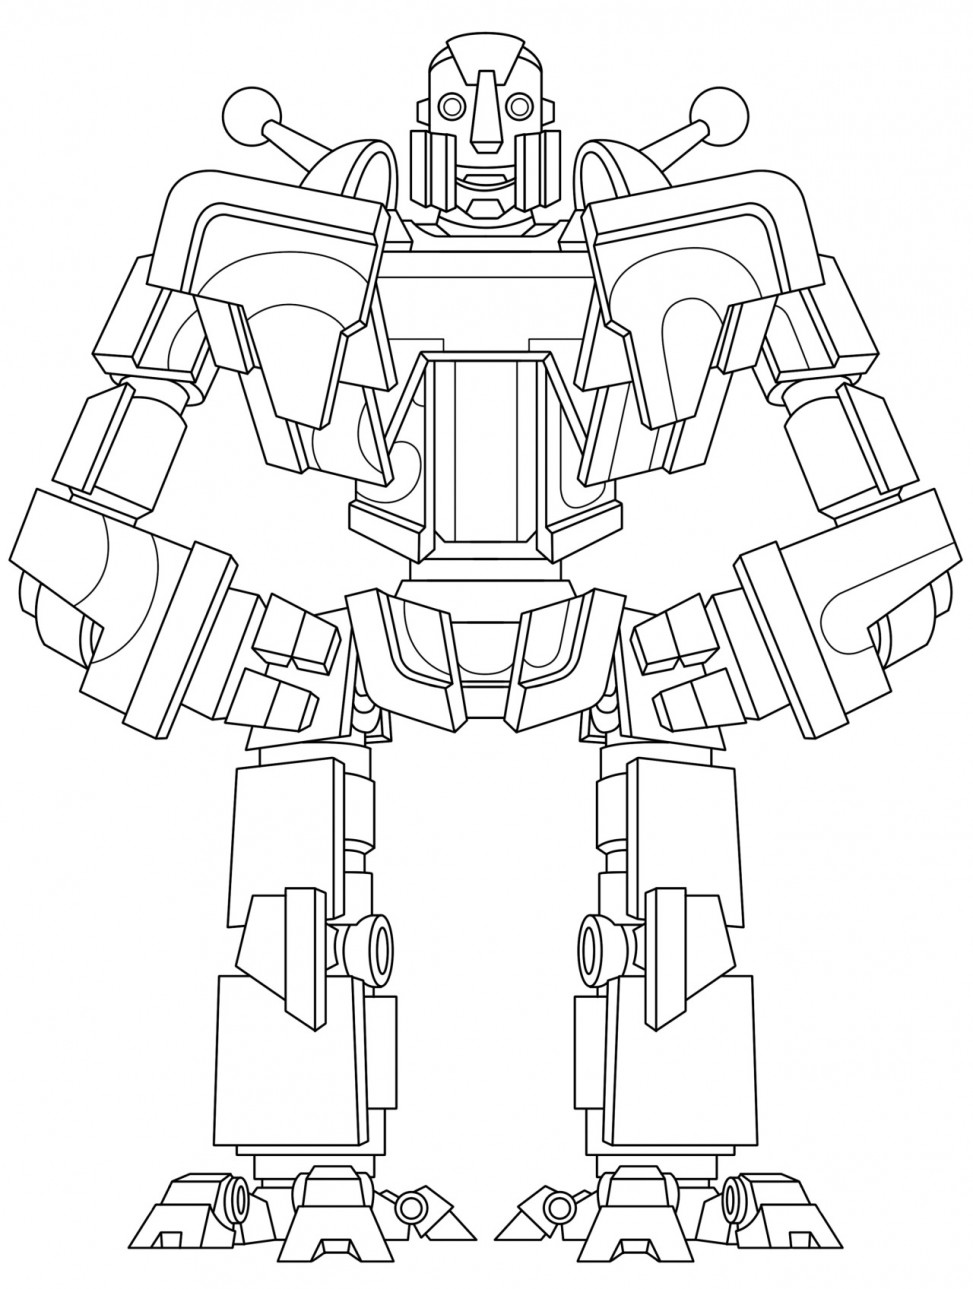 coloring robot pages from future robots coloring pages and robot craft ideas robot pages coloring